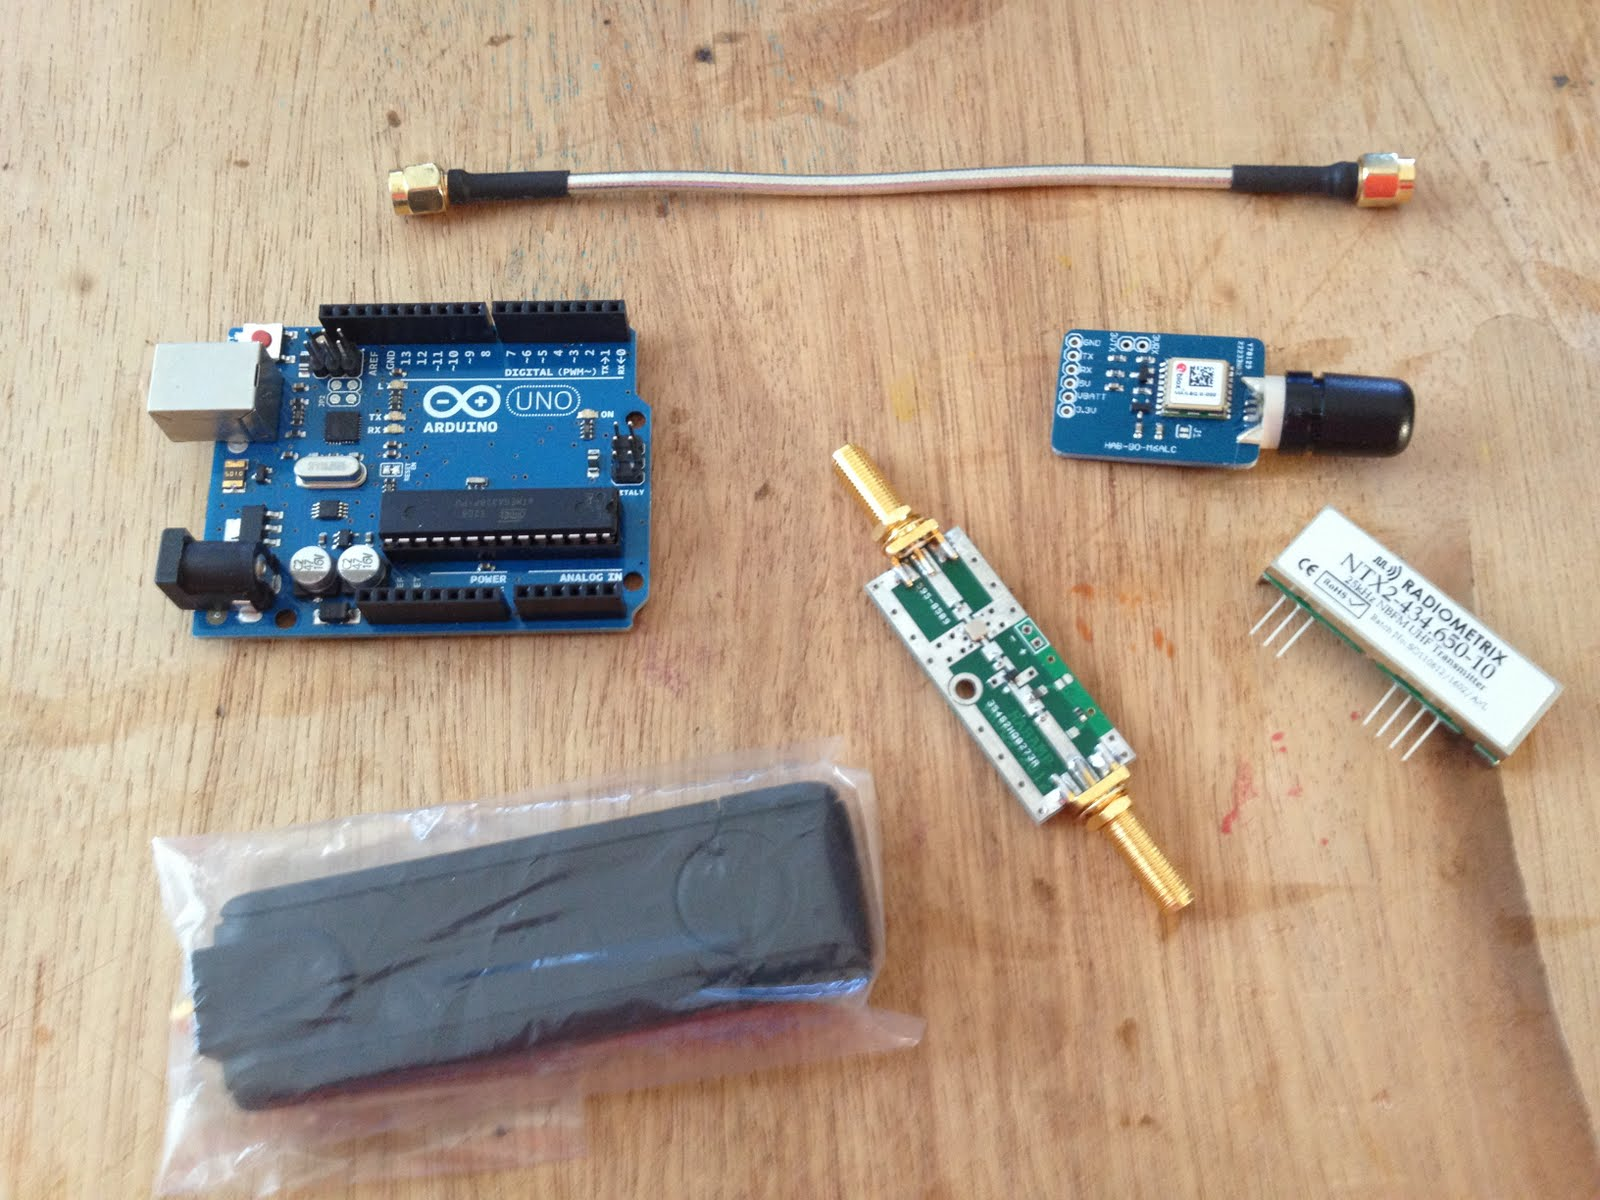 The Tracker and Radio Receiver